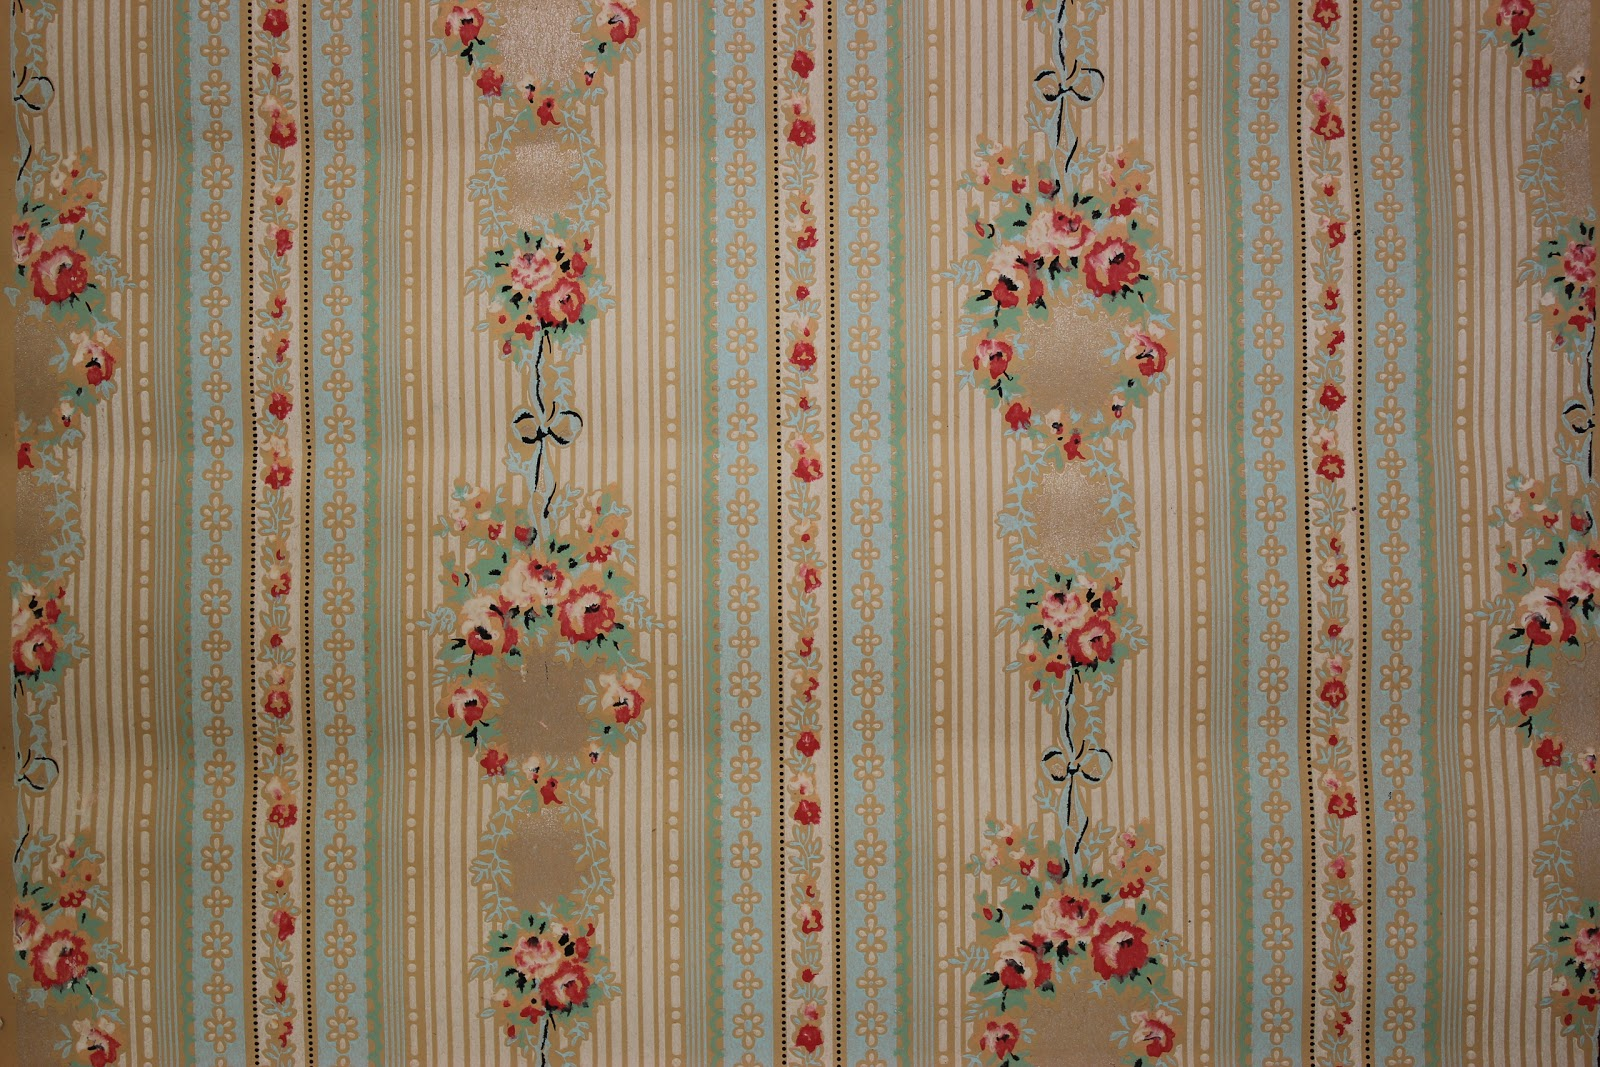 Rosie's Vintage Wallpaper: My Love for Vintage Wallpaper